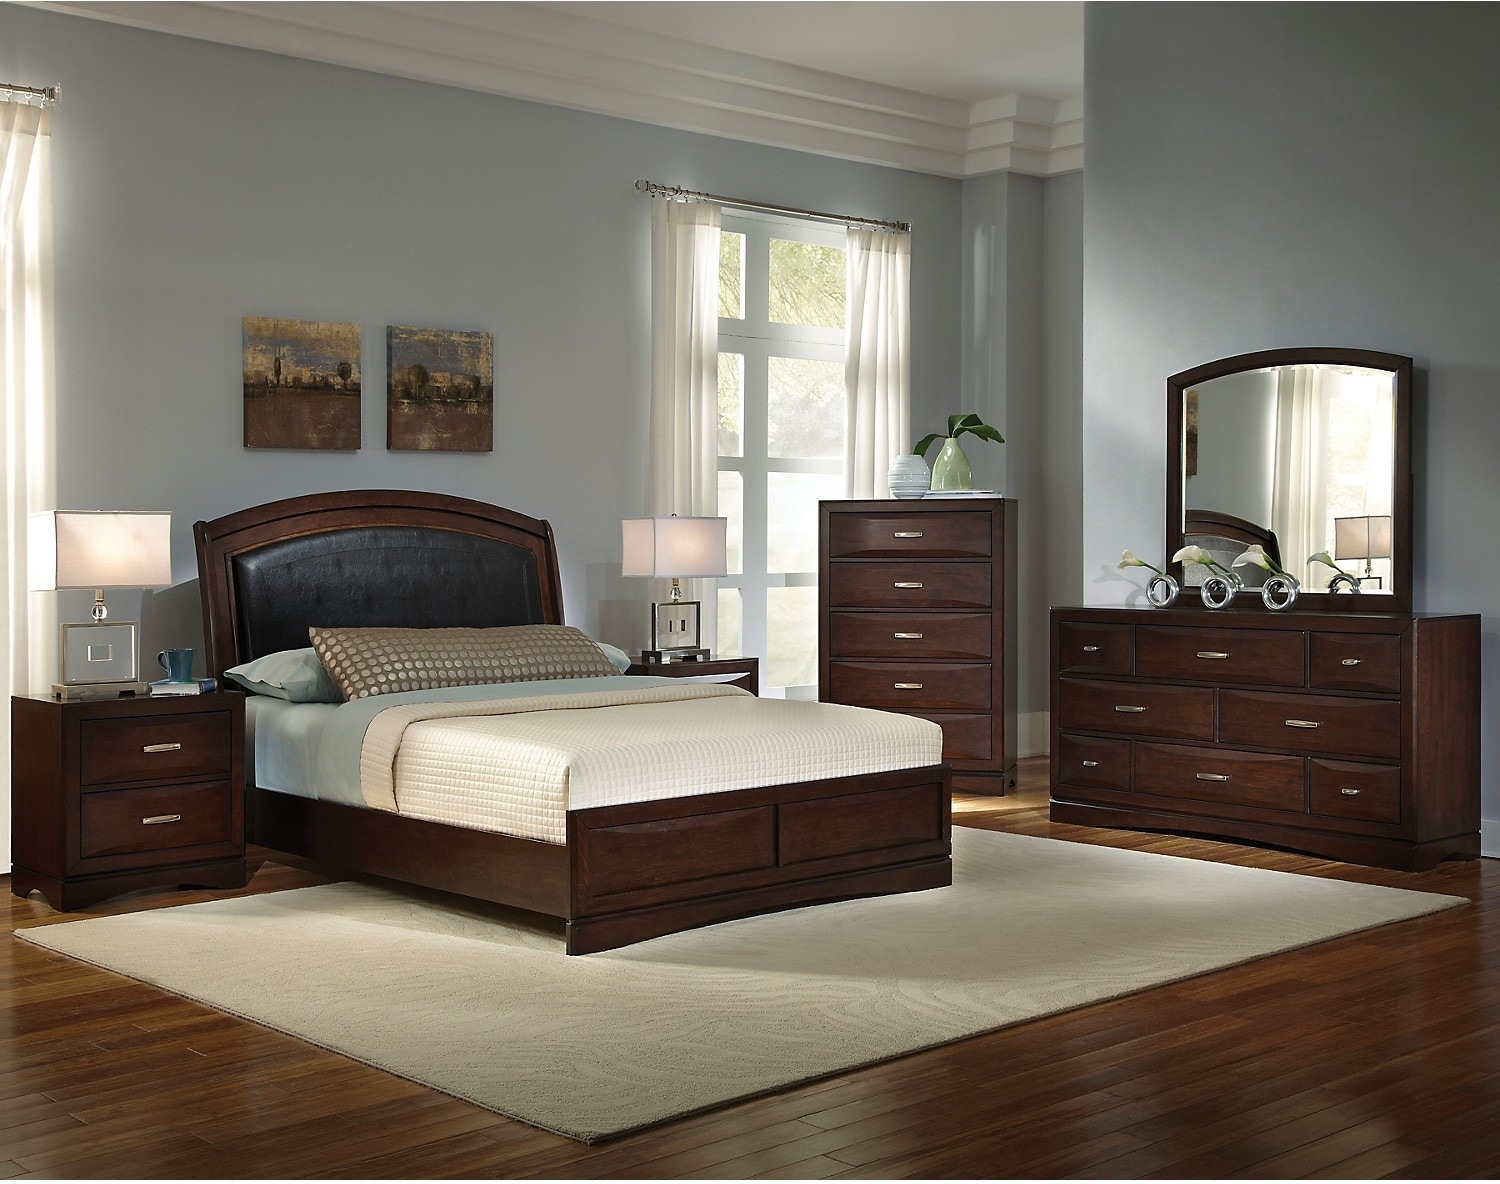 Farm House Floor Plans Beverly 8 Piece King Bedroom Set The Brick